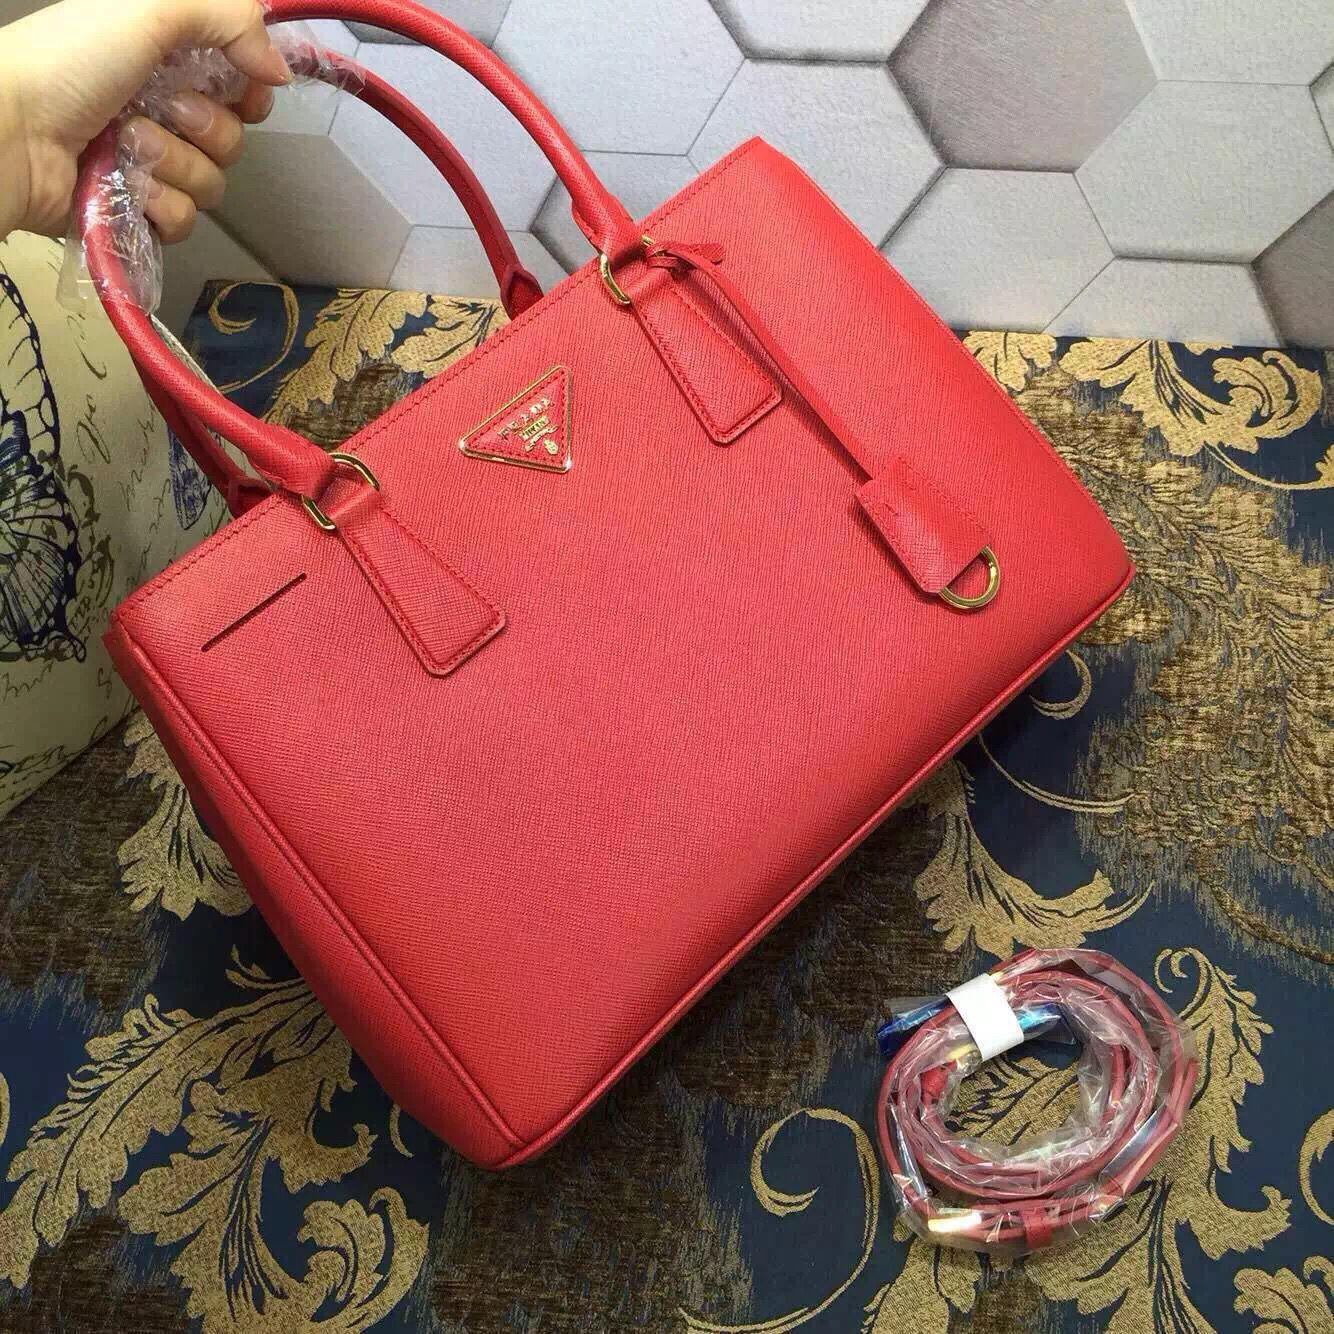 36159b77c485 Prada Saffiano Leather BN1874 Tote Bag Red | Prada Tote Bag on Sale ...